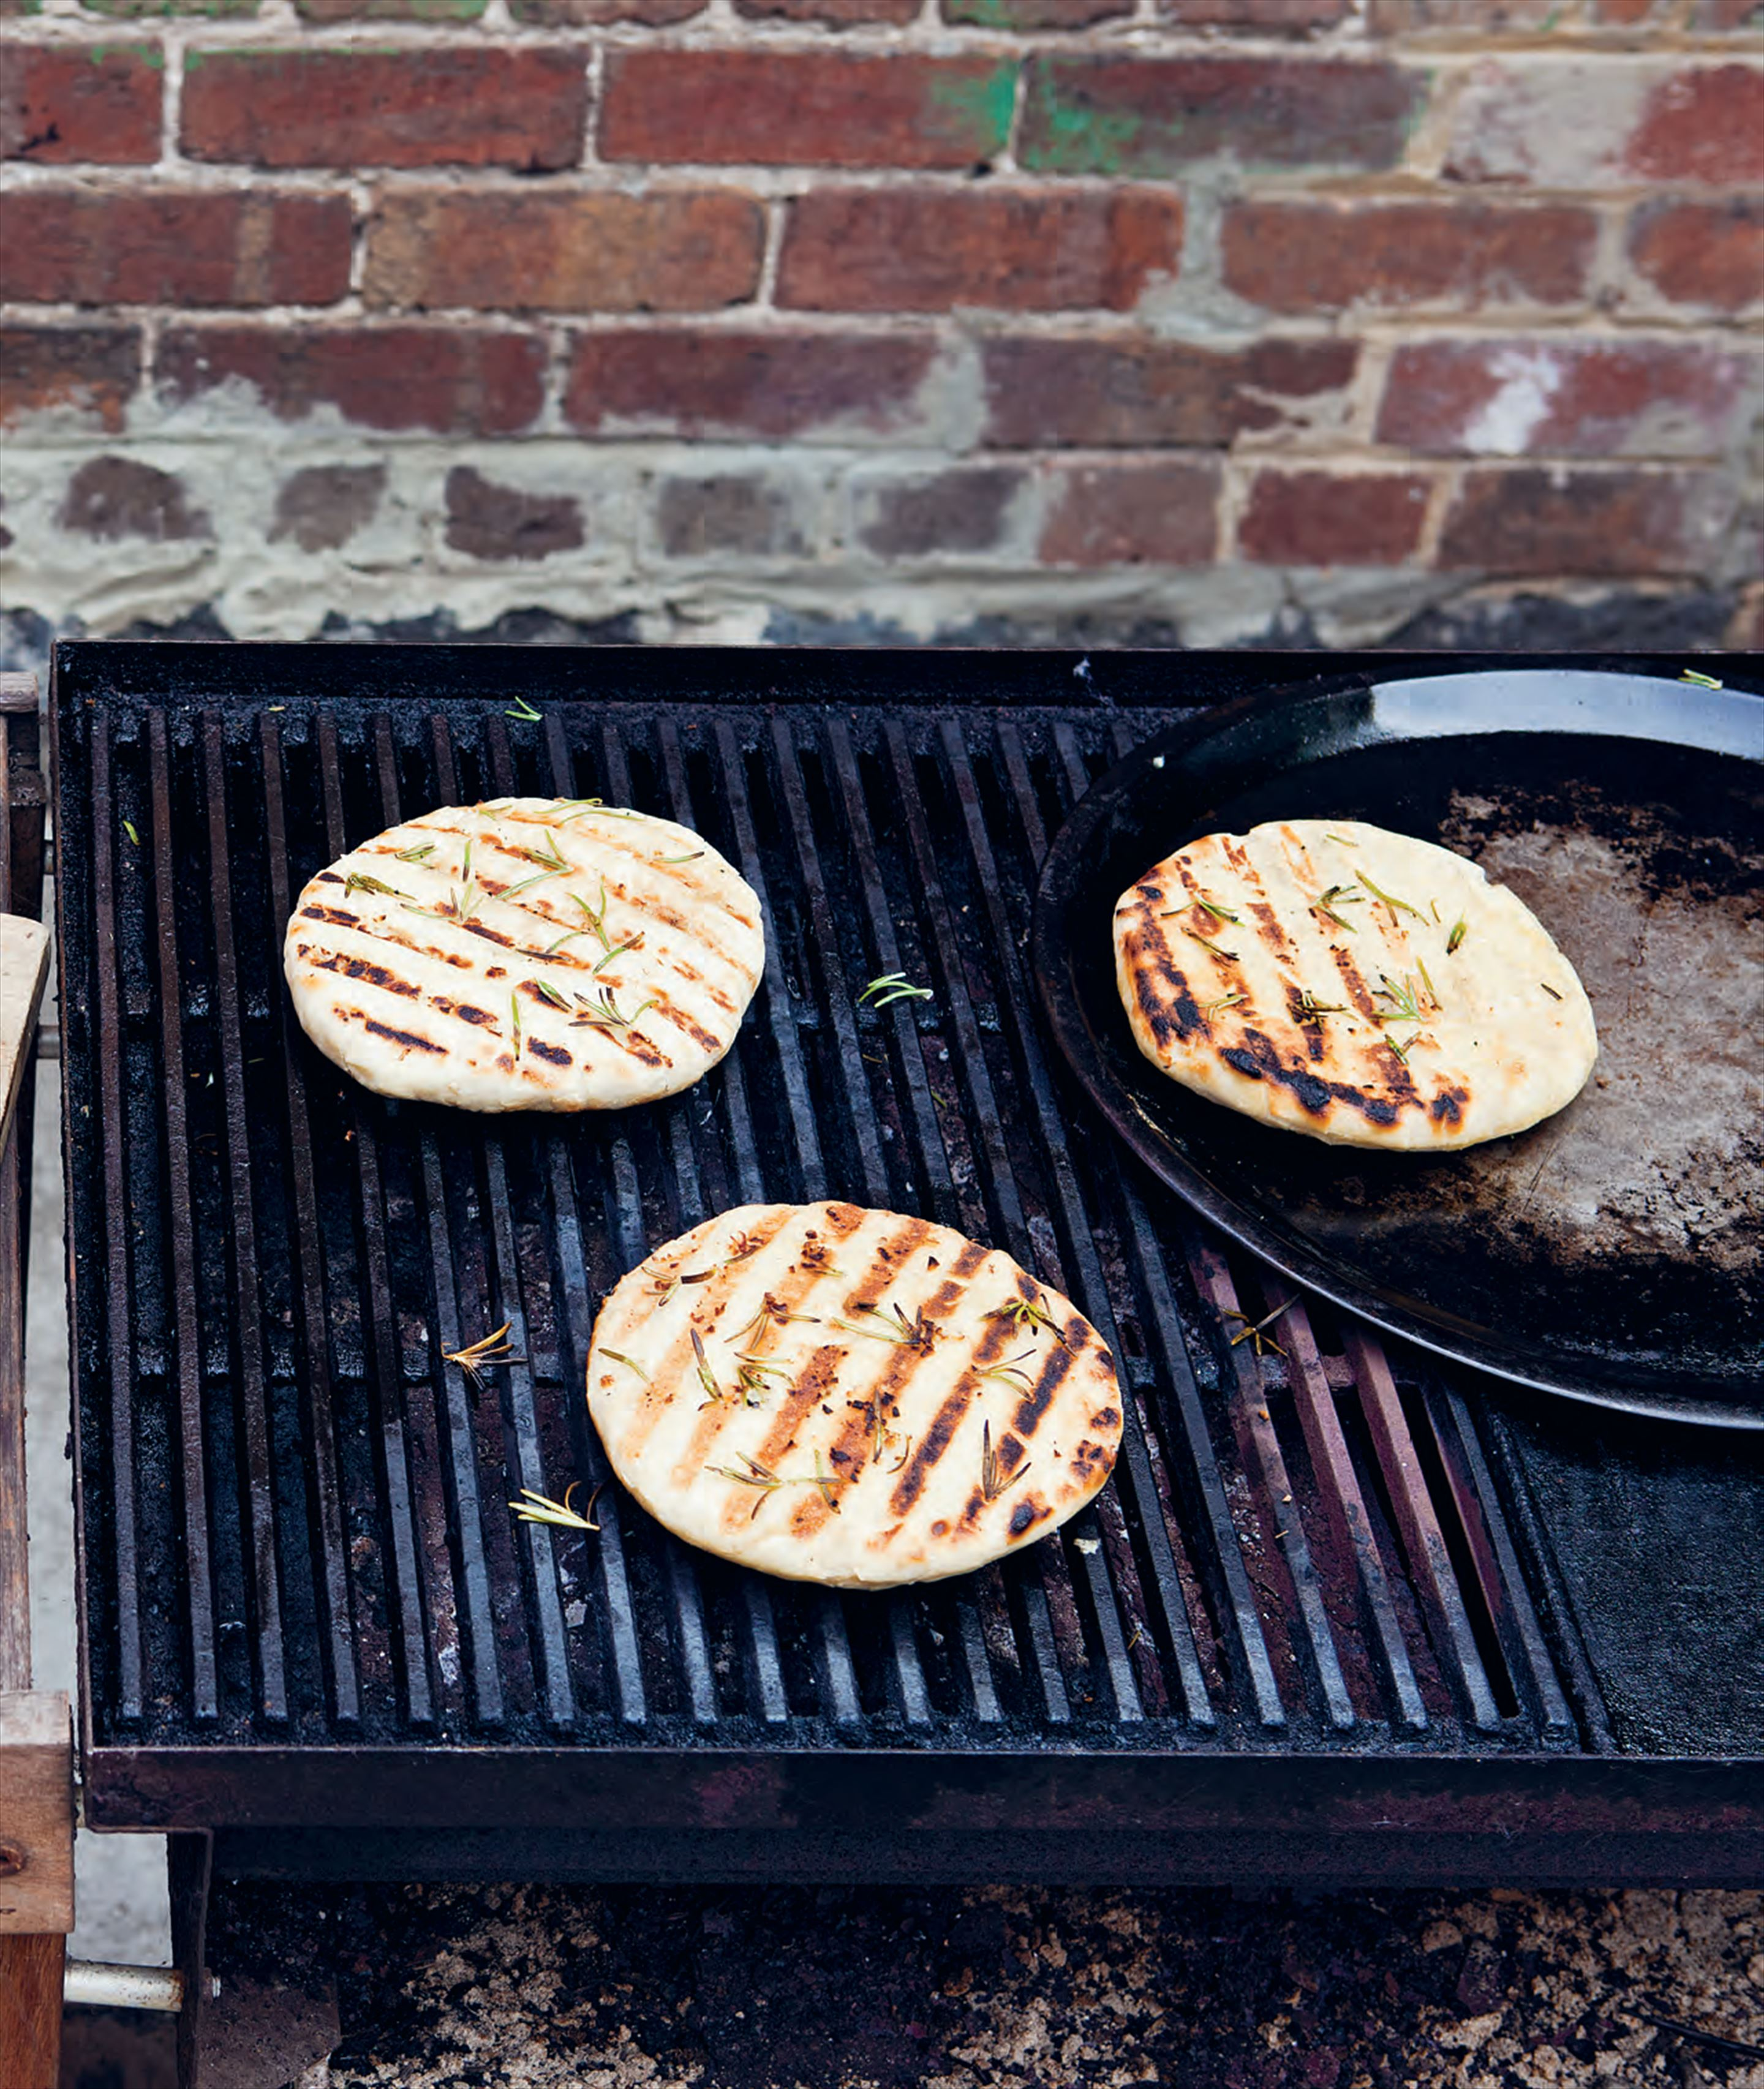 Argentinian grilled garlic and rosemary flat bread